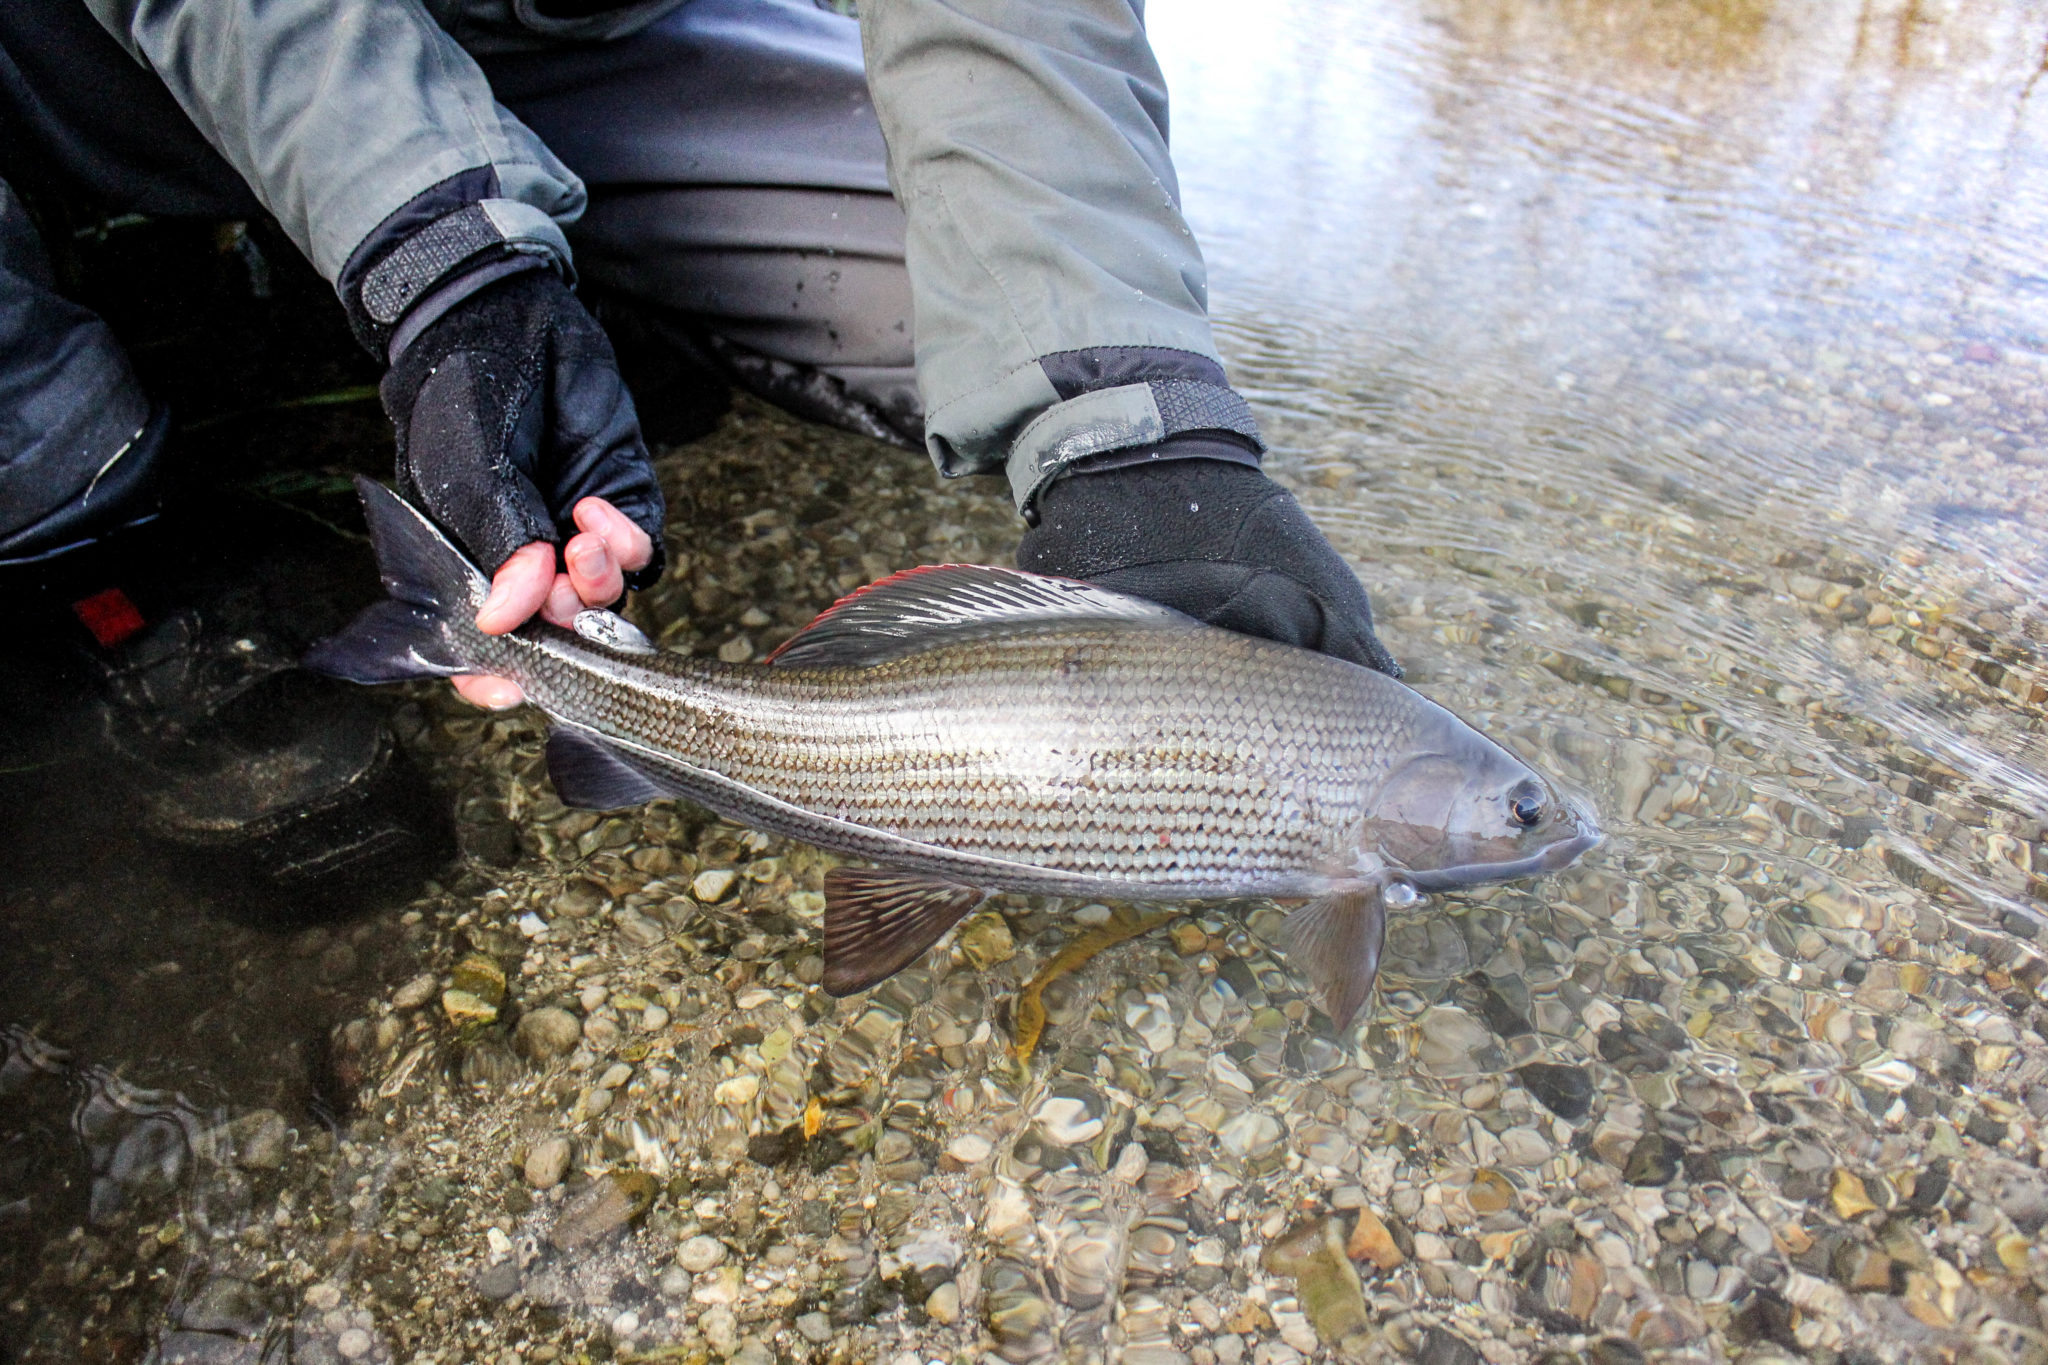 Grayling chalkstream fly fishing, River Kennet Chalkstream fly fishing, Dry Fly Fishing, Alex Jardine, Aardvark McLeod Dry Fly Fishing